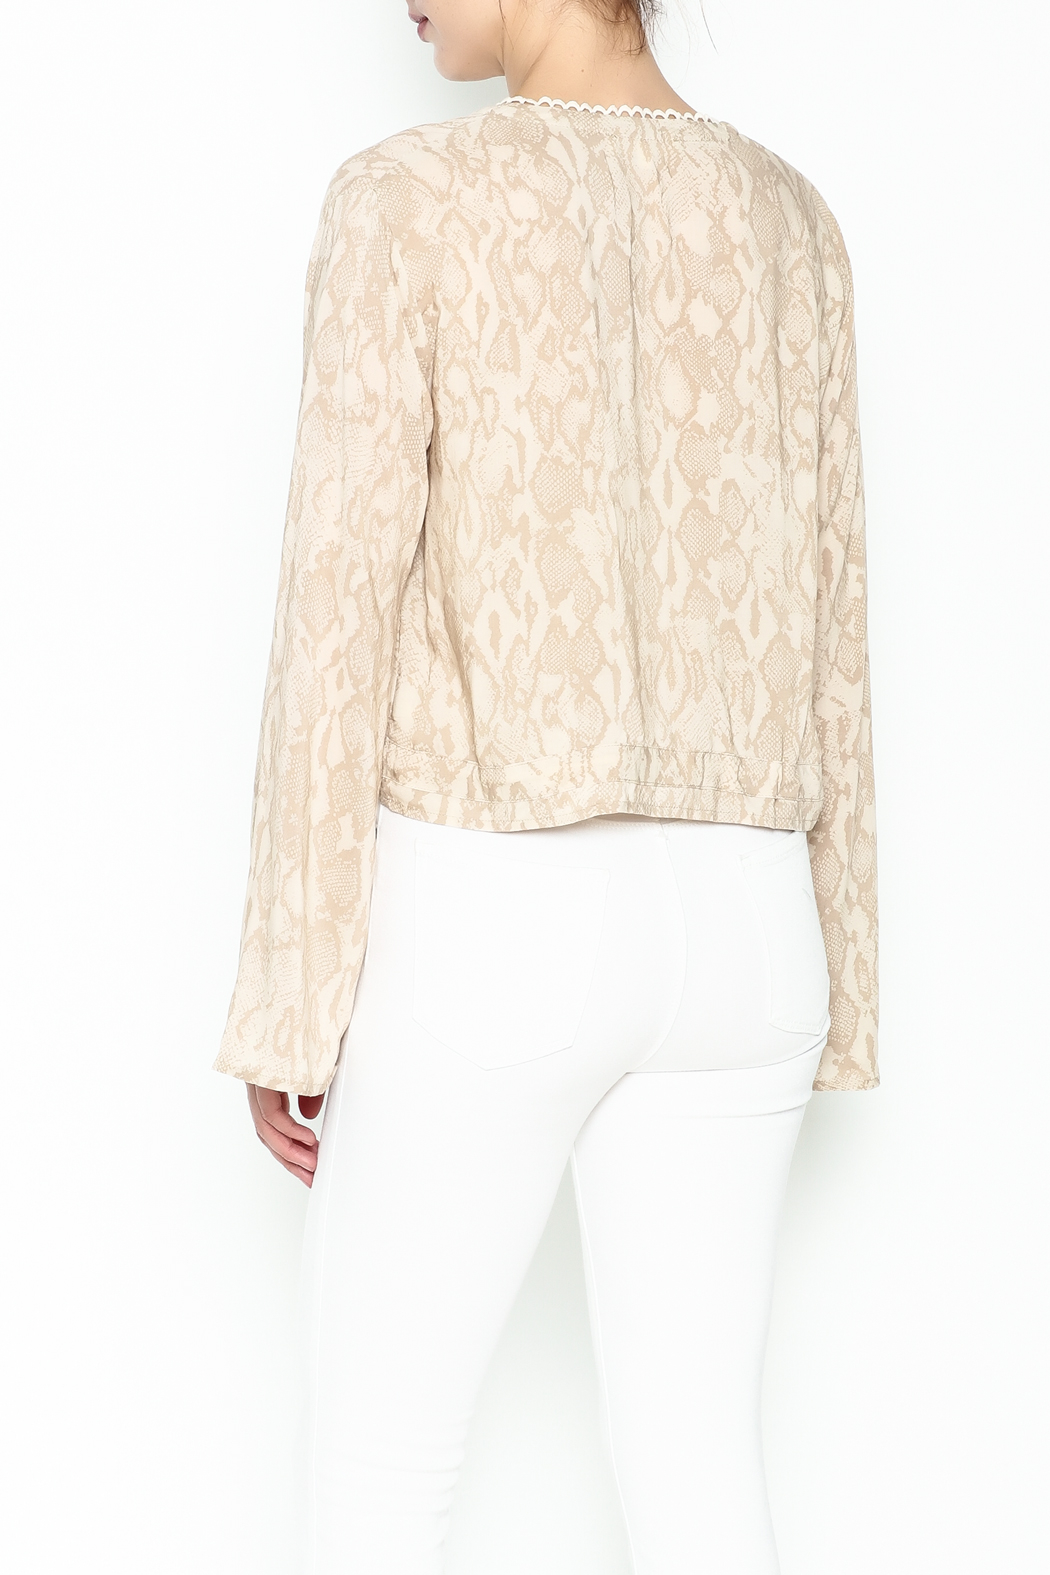 Olivaceous Python Plunge Top - Back Cropped Image